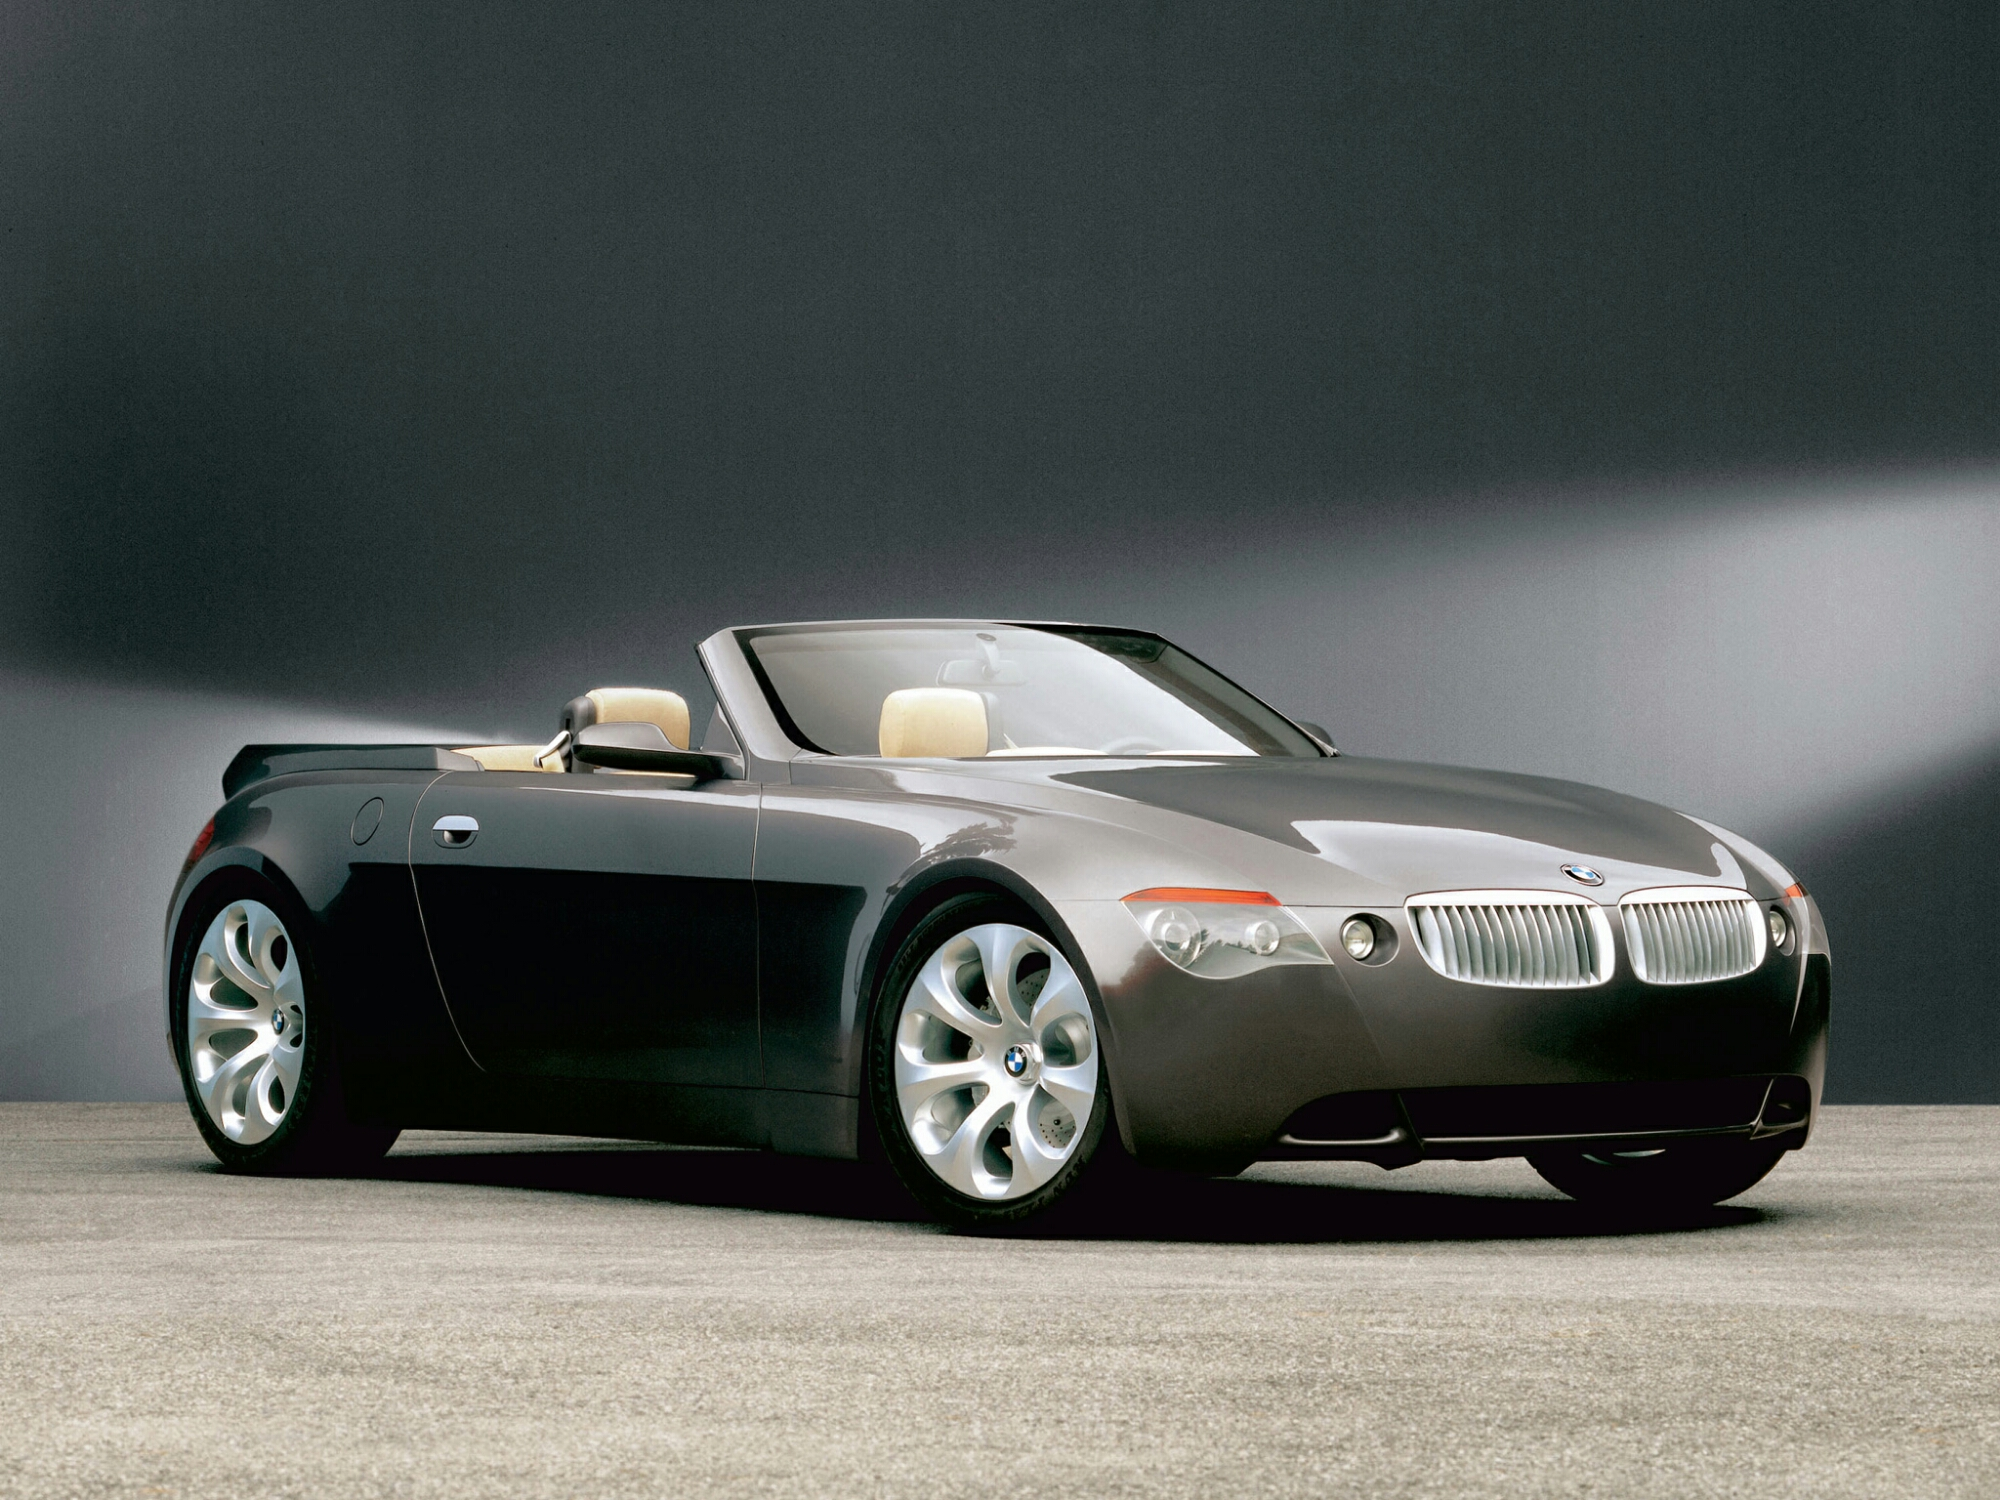 BMW Z9 Convertible (2000) | BMW Concepts and Prototypes